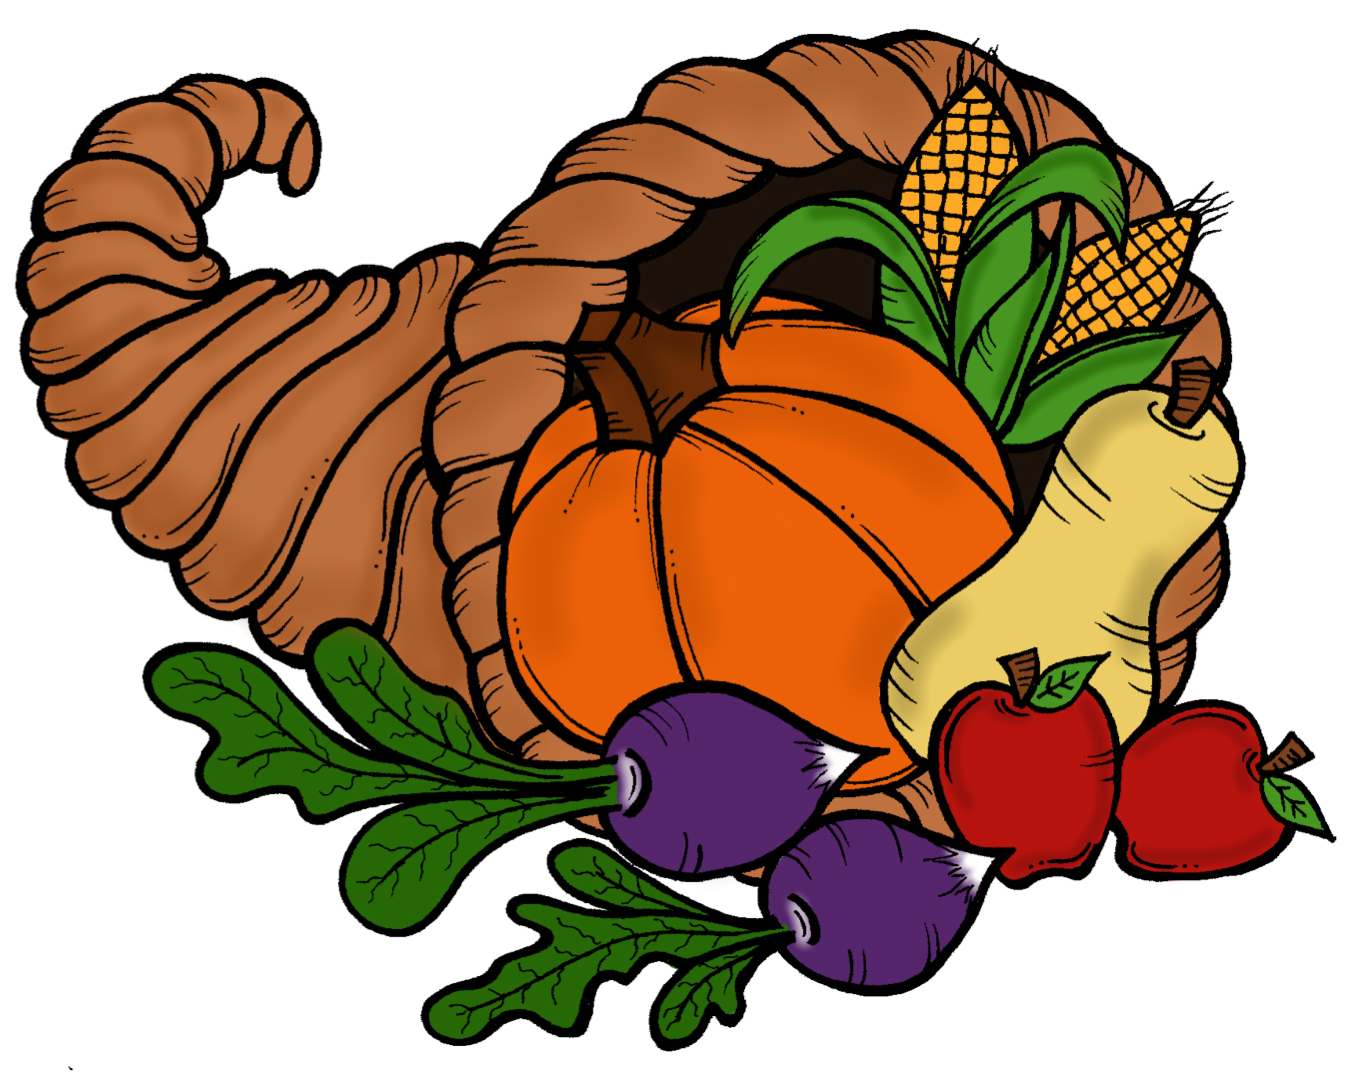 Vintage cornucopia thanksgiving clipart free vector black and white library 28+ Collection of Thanksgiving Cornucopia Clipart Free | High ... vector black and white library